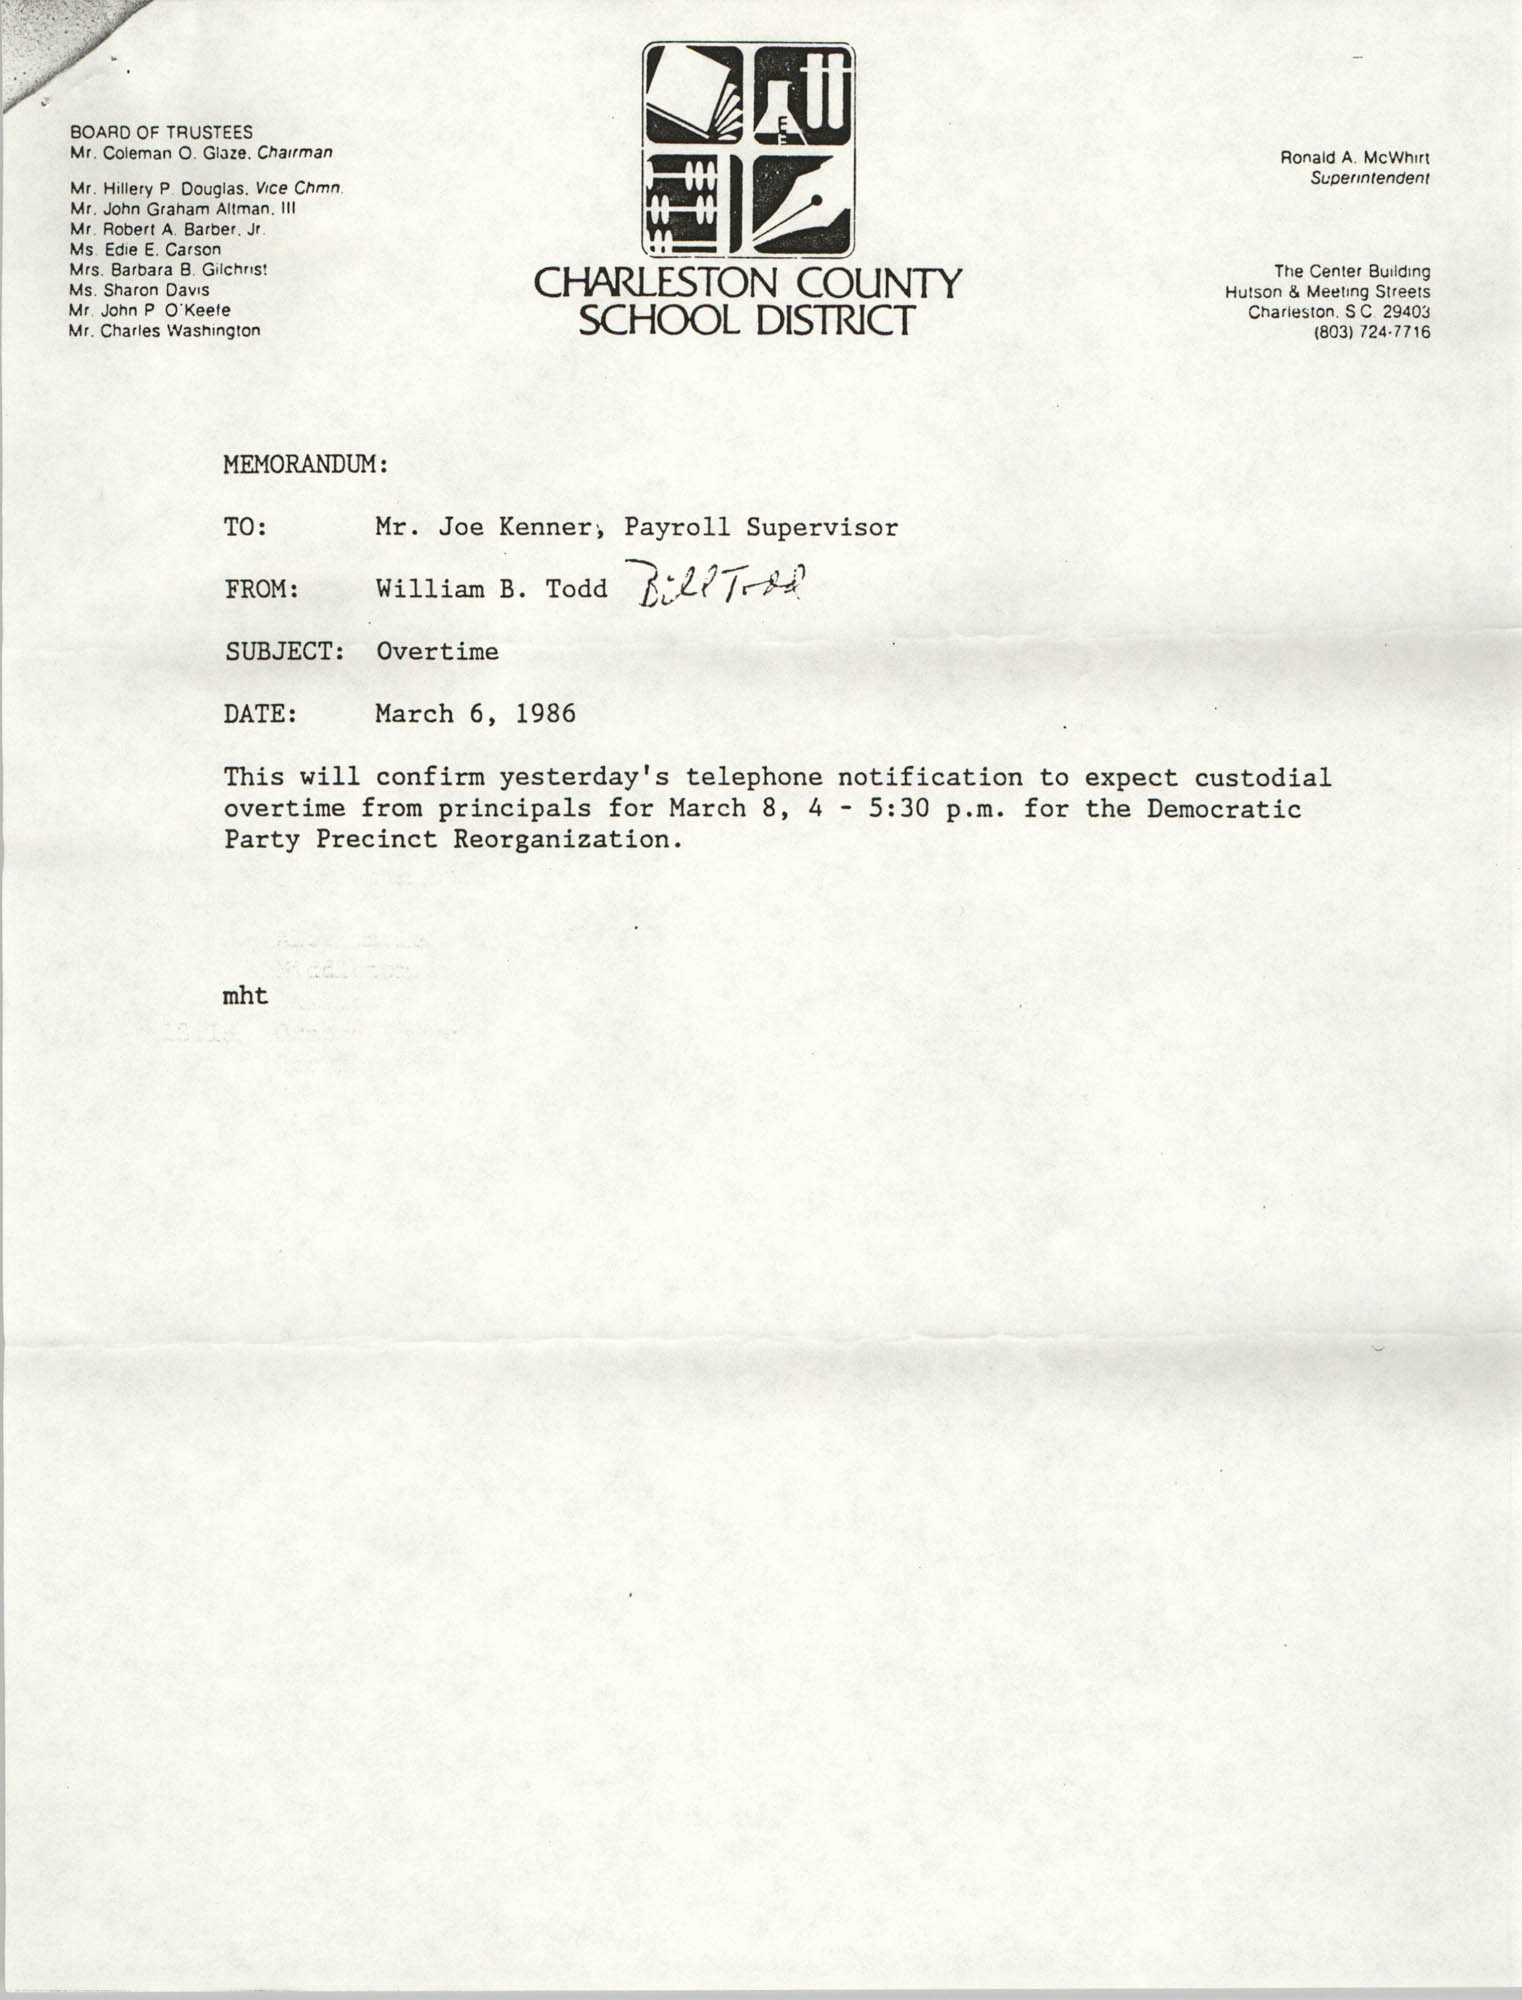 Letter from William B. Todd to Joe Kenner, March 6, 1986